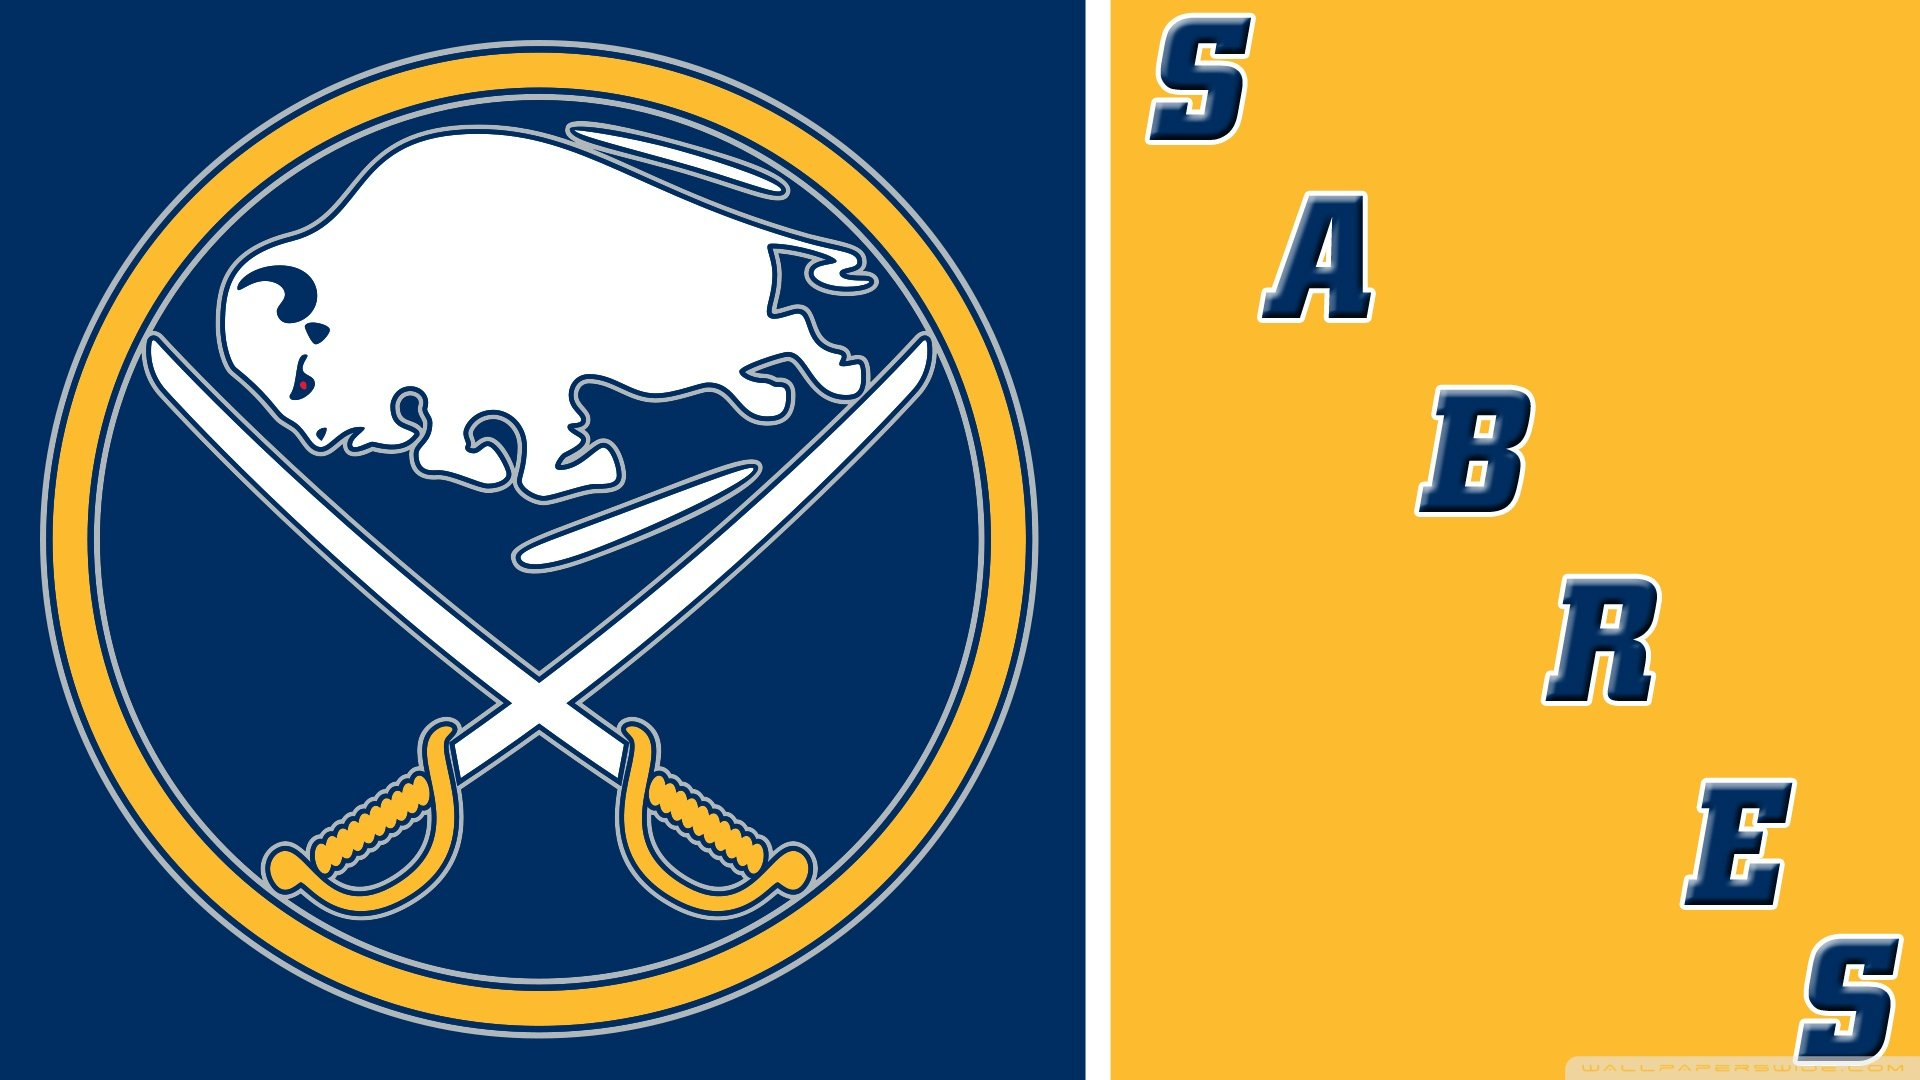 sabres 2013 2014 wallpaper - photo #3